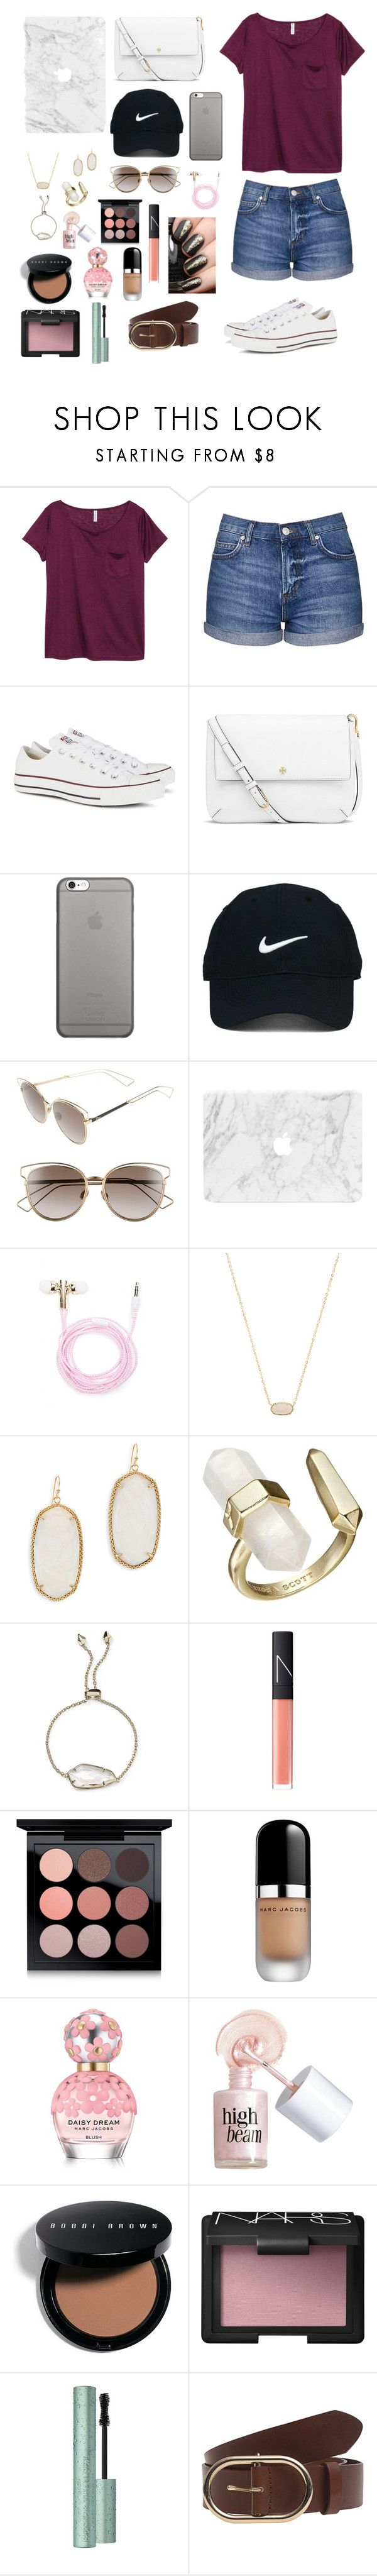 By gabriellaallen on polyvore featuring h m topshop converse tory burch kendra scott